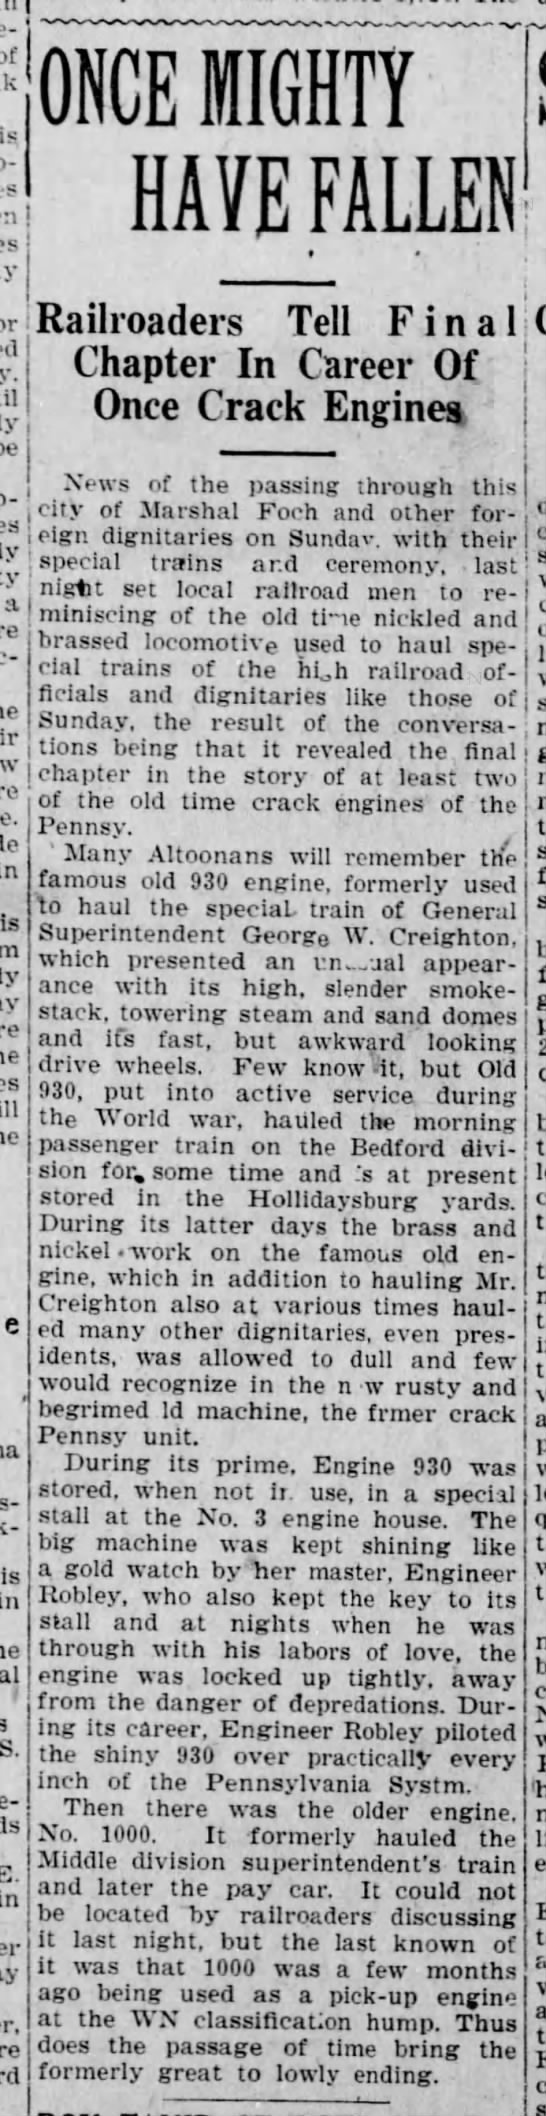 Robley-Engine-Altoona Tribune-28 Oct 1921 p4 - of is be prop-' prop-' t a is Brook- is in ' S....